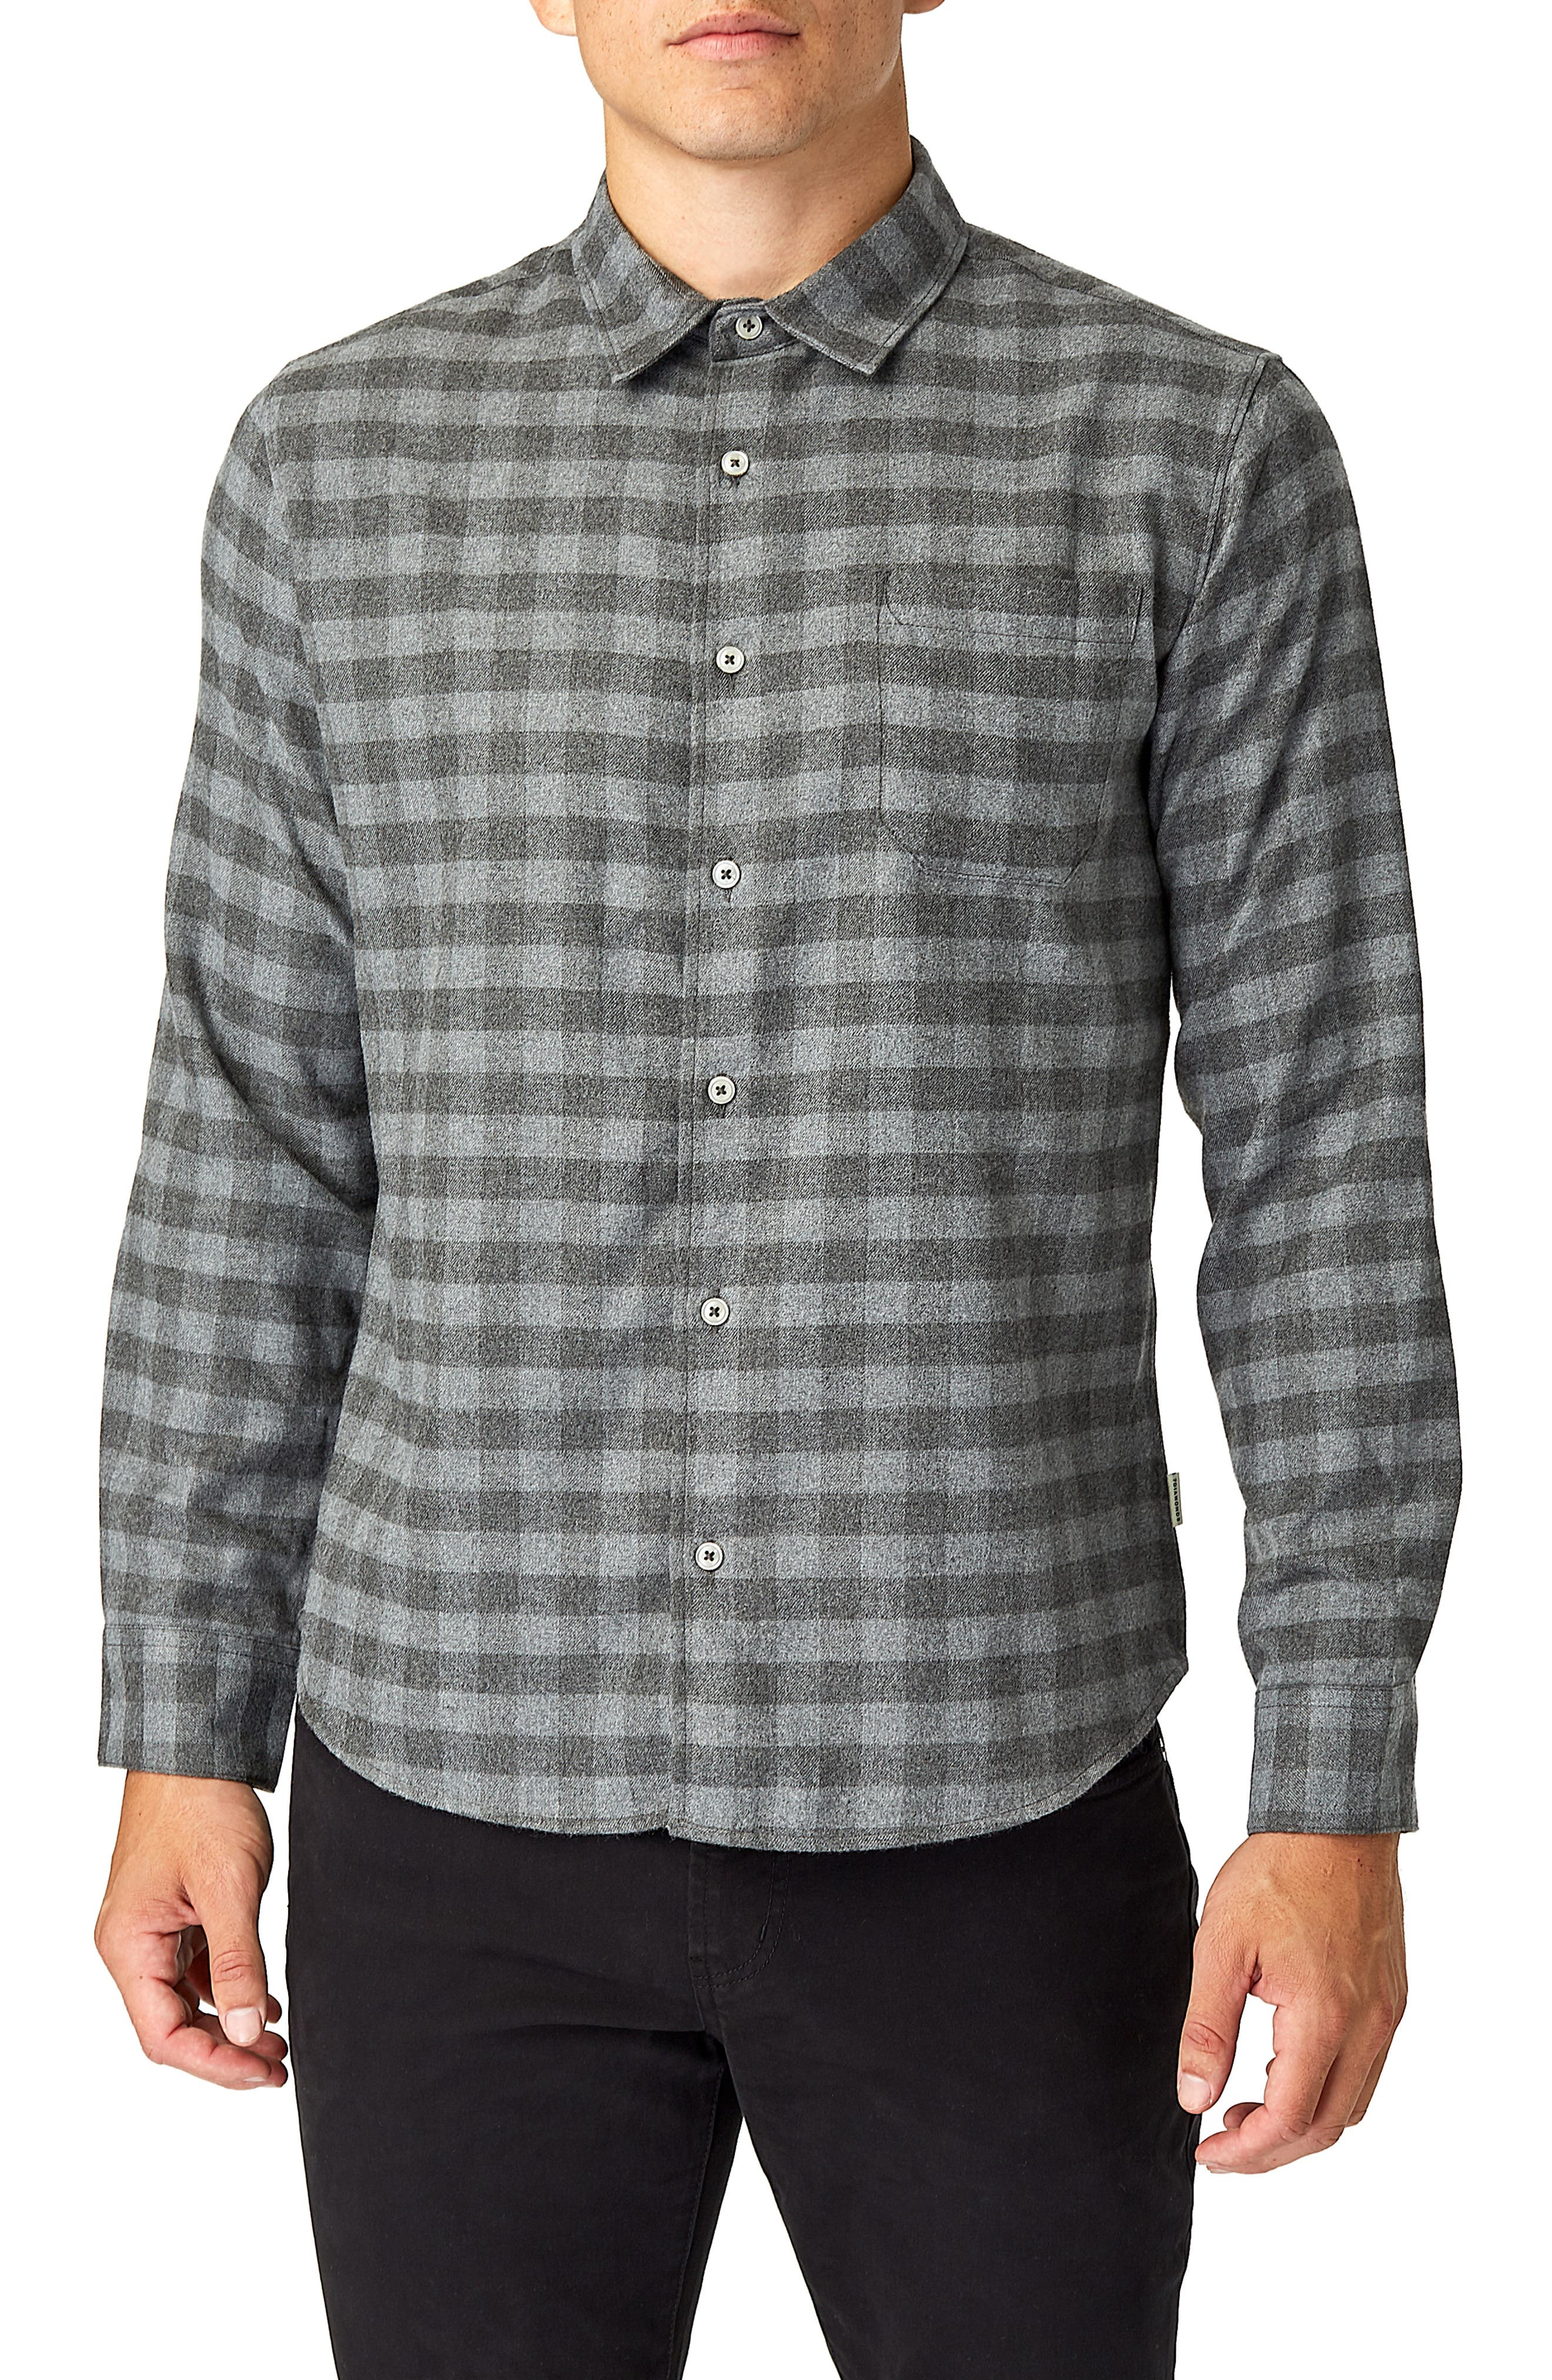 Asher Trim Fit Flannel Shirt,                         Main,                         color, GREY